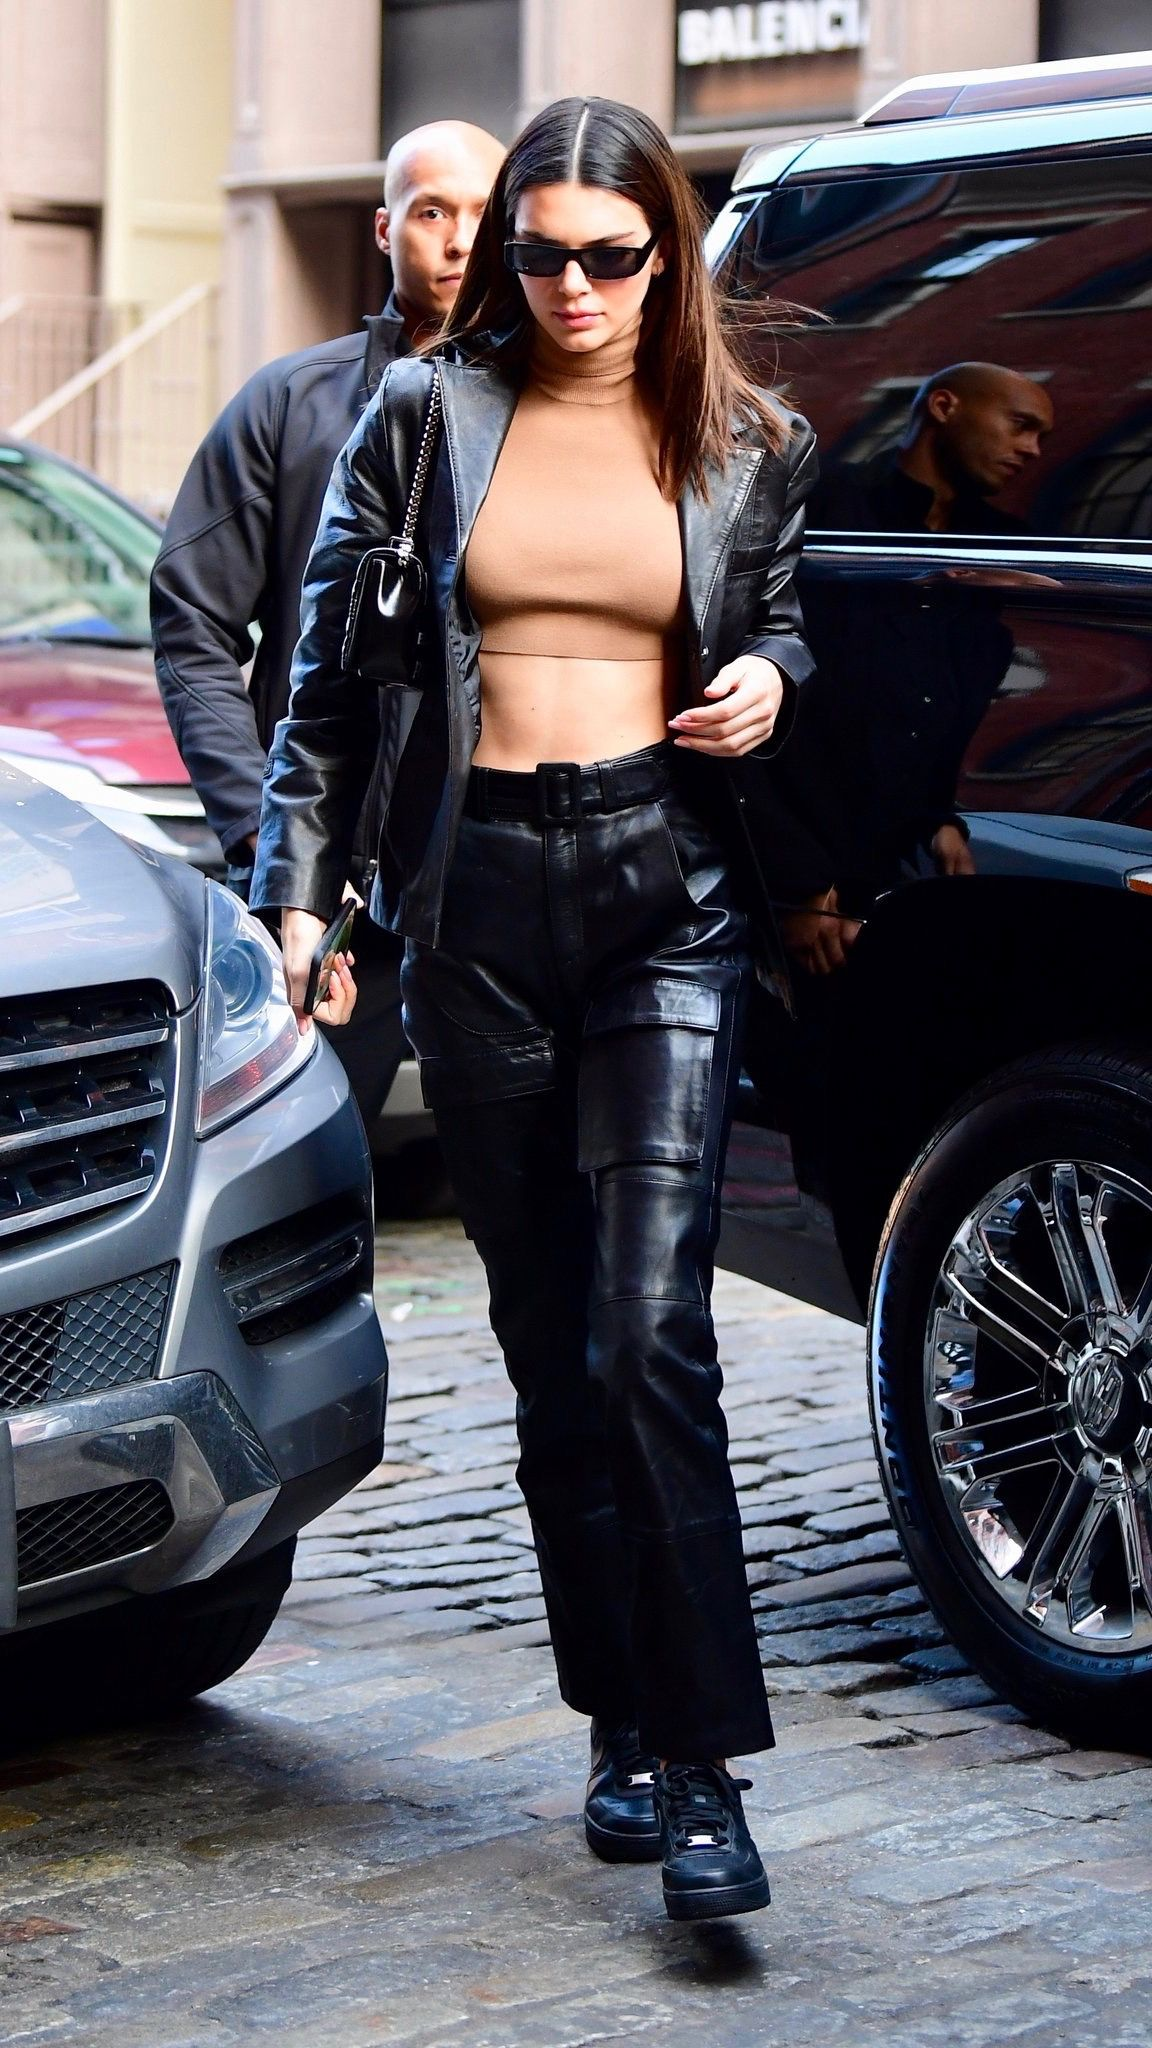 Kendall Outfits On Twitter Kendall Jenner Street Style Kendall Jenner Outfits Jenner Outfits [ 2048 x 1152 Pixel ]